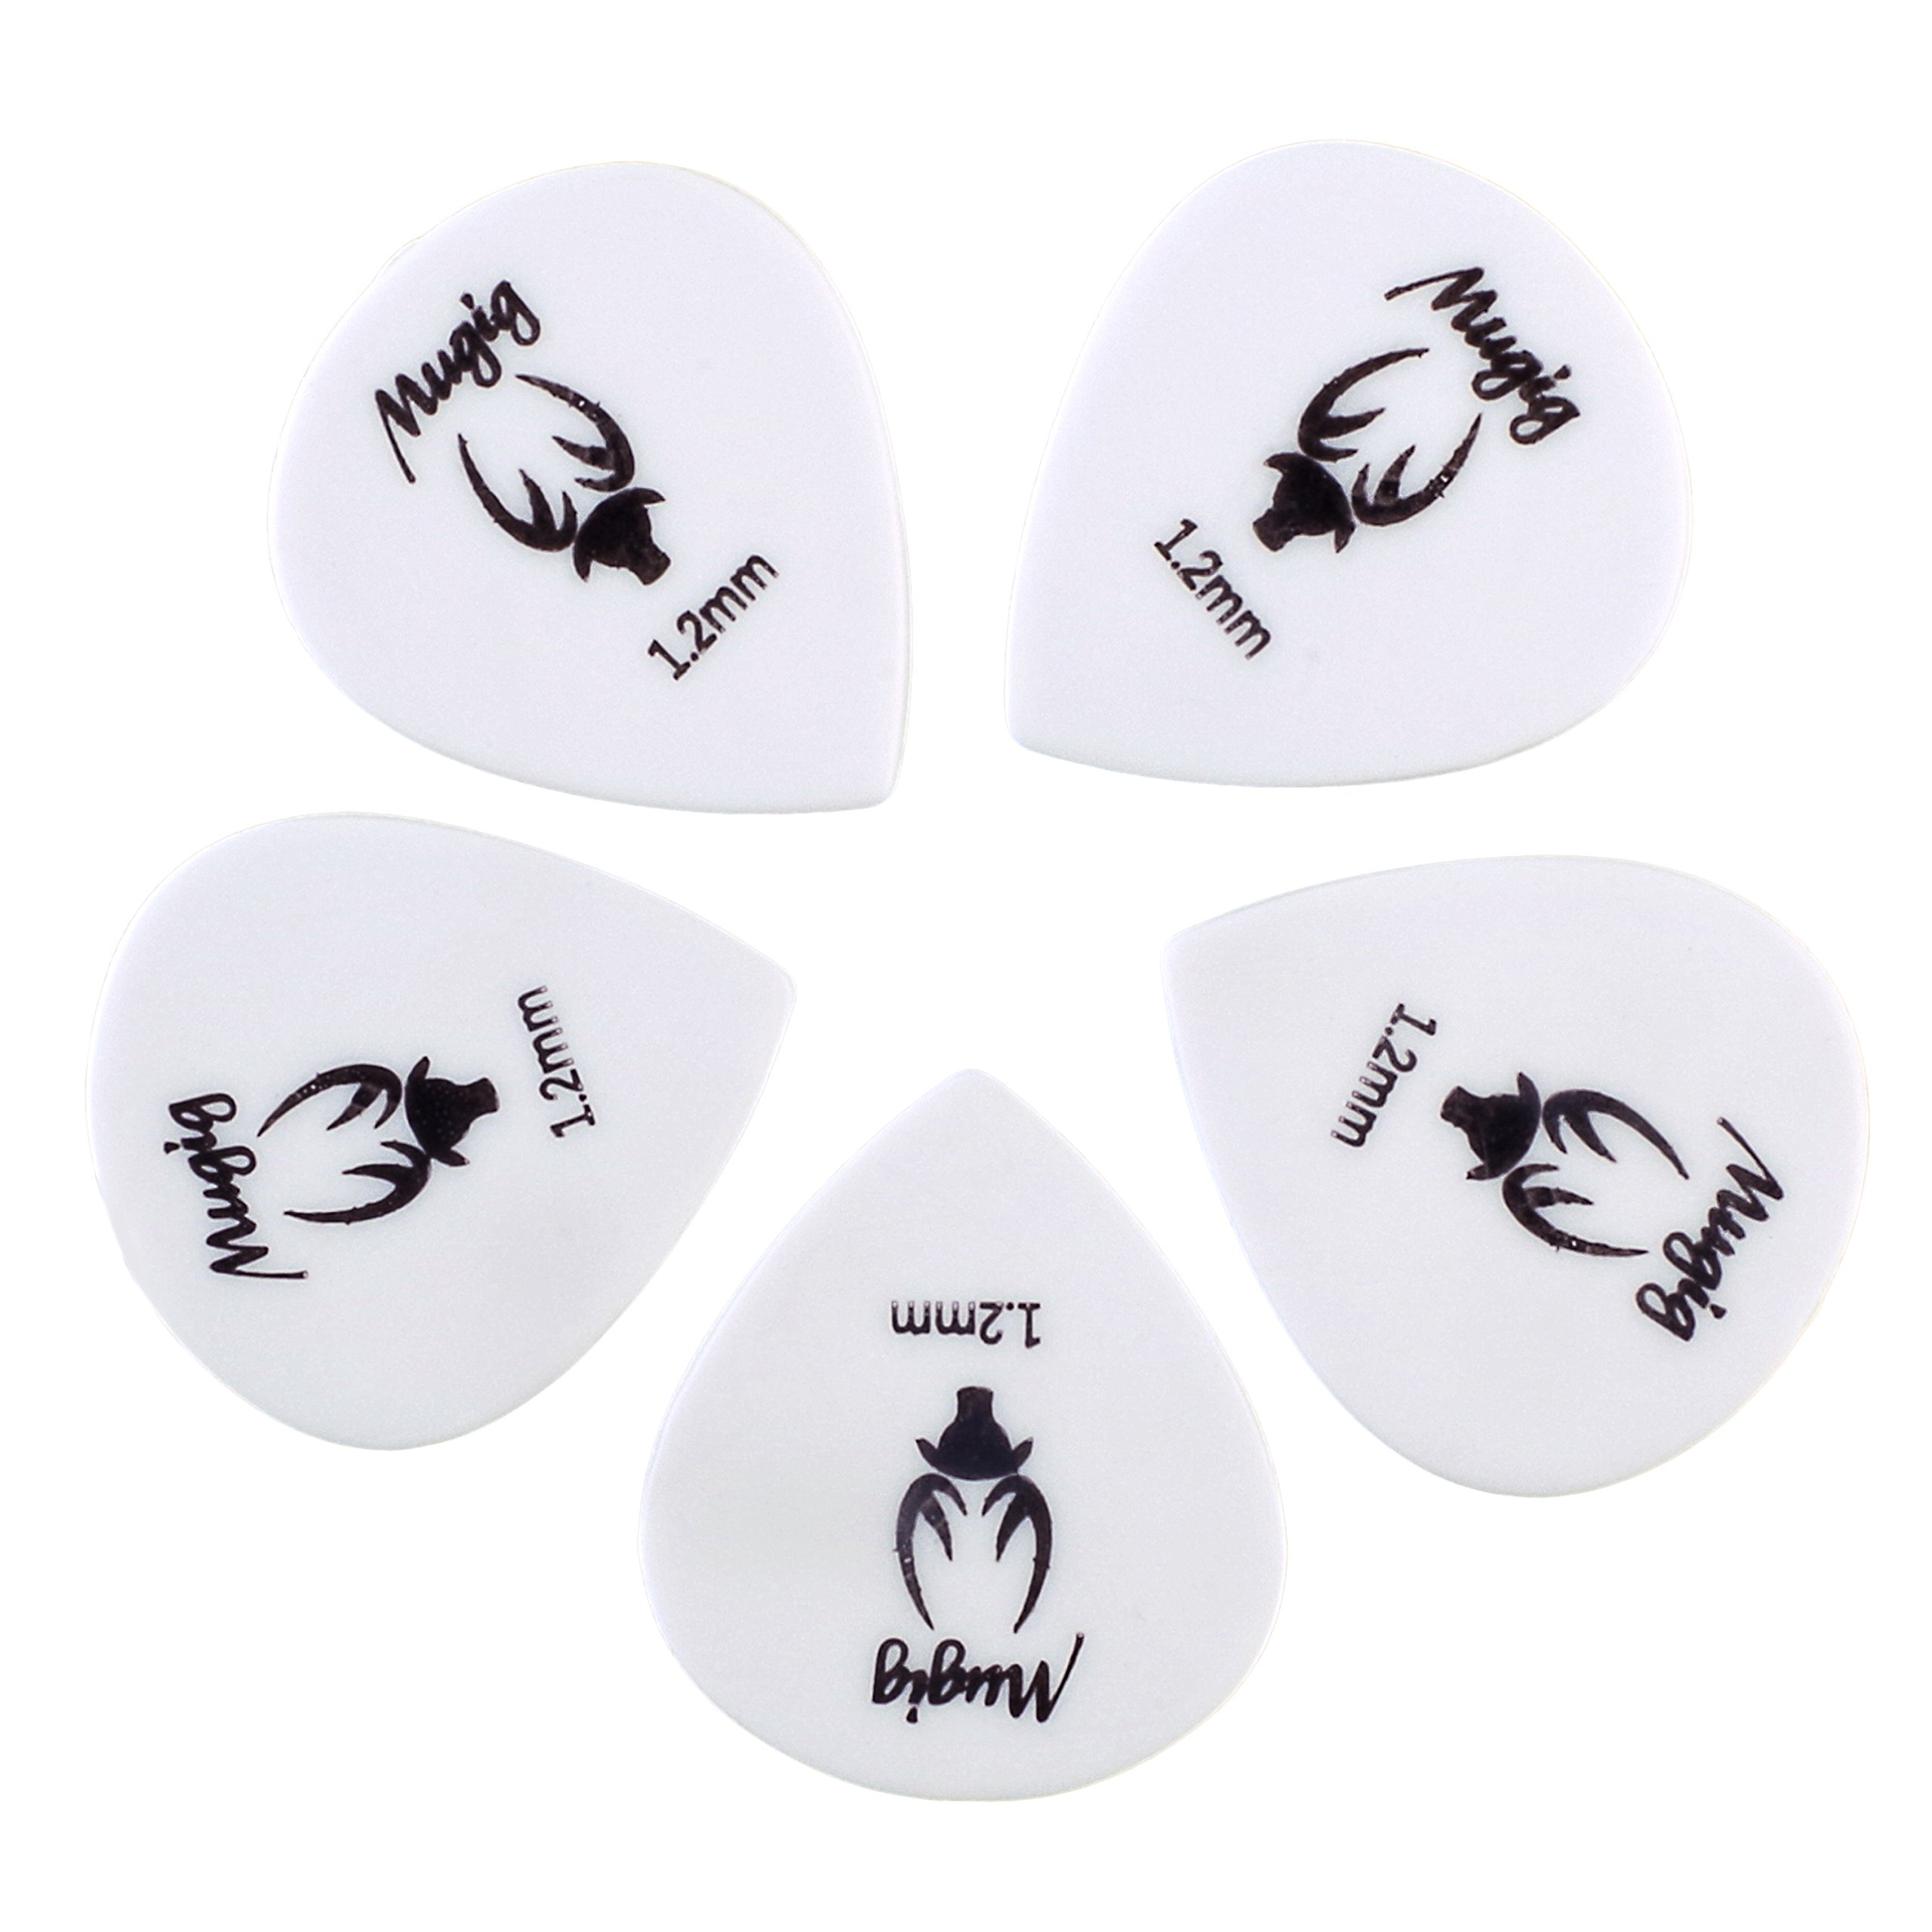 Mugig Guitar Picks, Guitar Accessories, Delrin Guitar Plectrums ,A Pack of 50 (1.2MM)